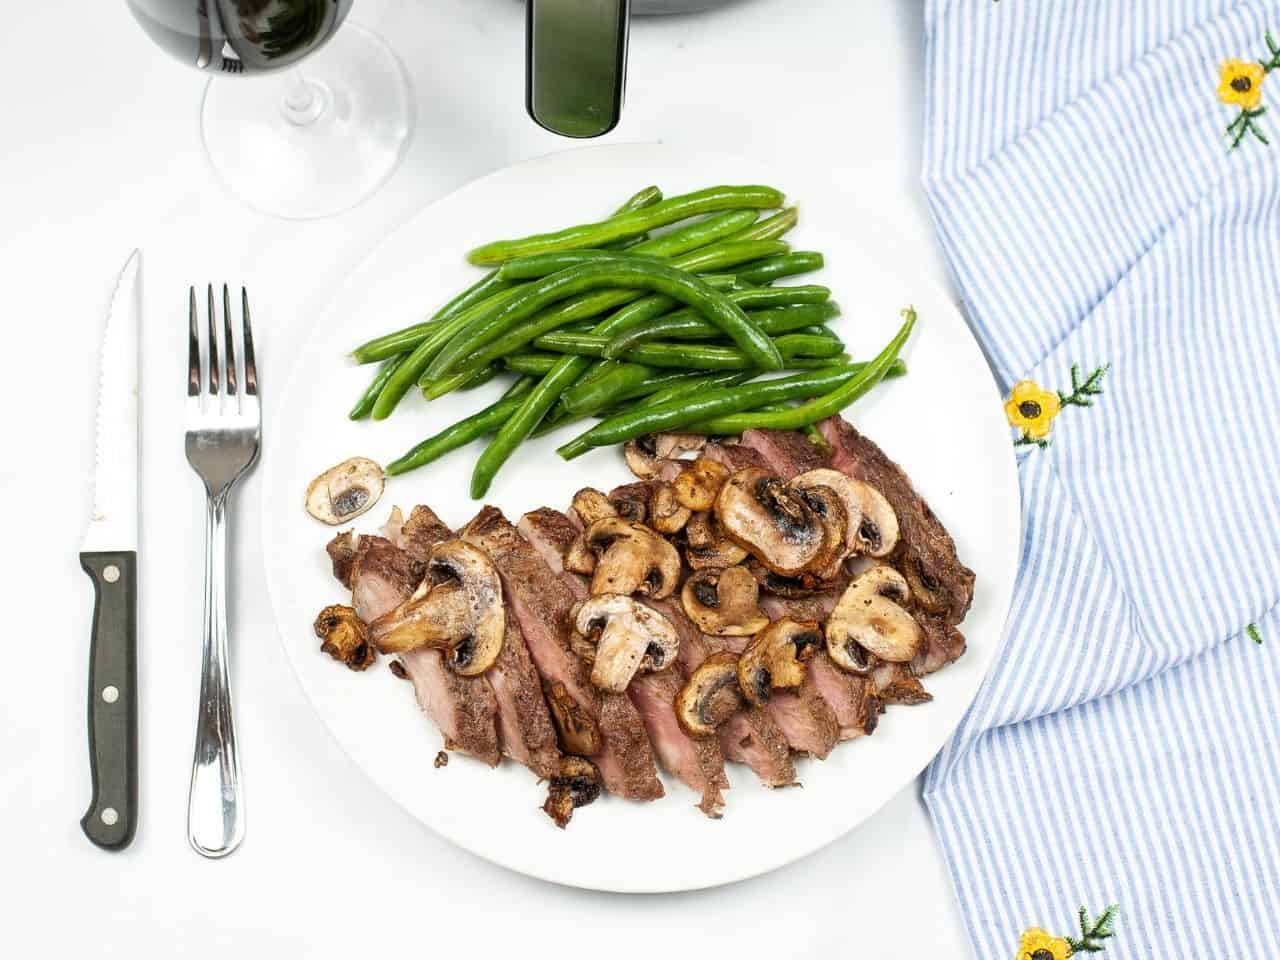 Cooked steak on a white plate with cooked mushrooms and green beans with a fork, steak knife and blue and white stripped napkin.